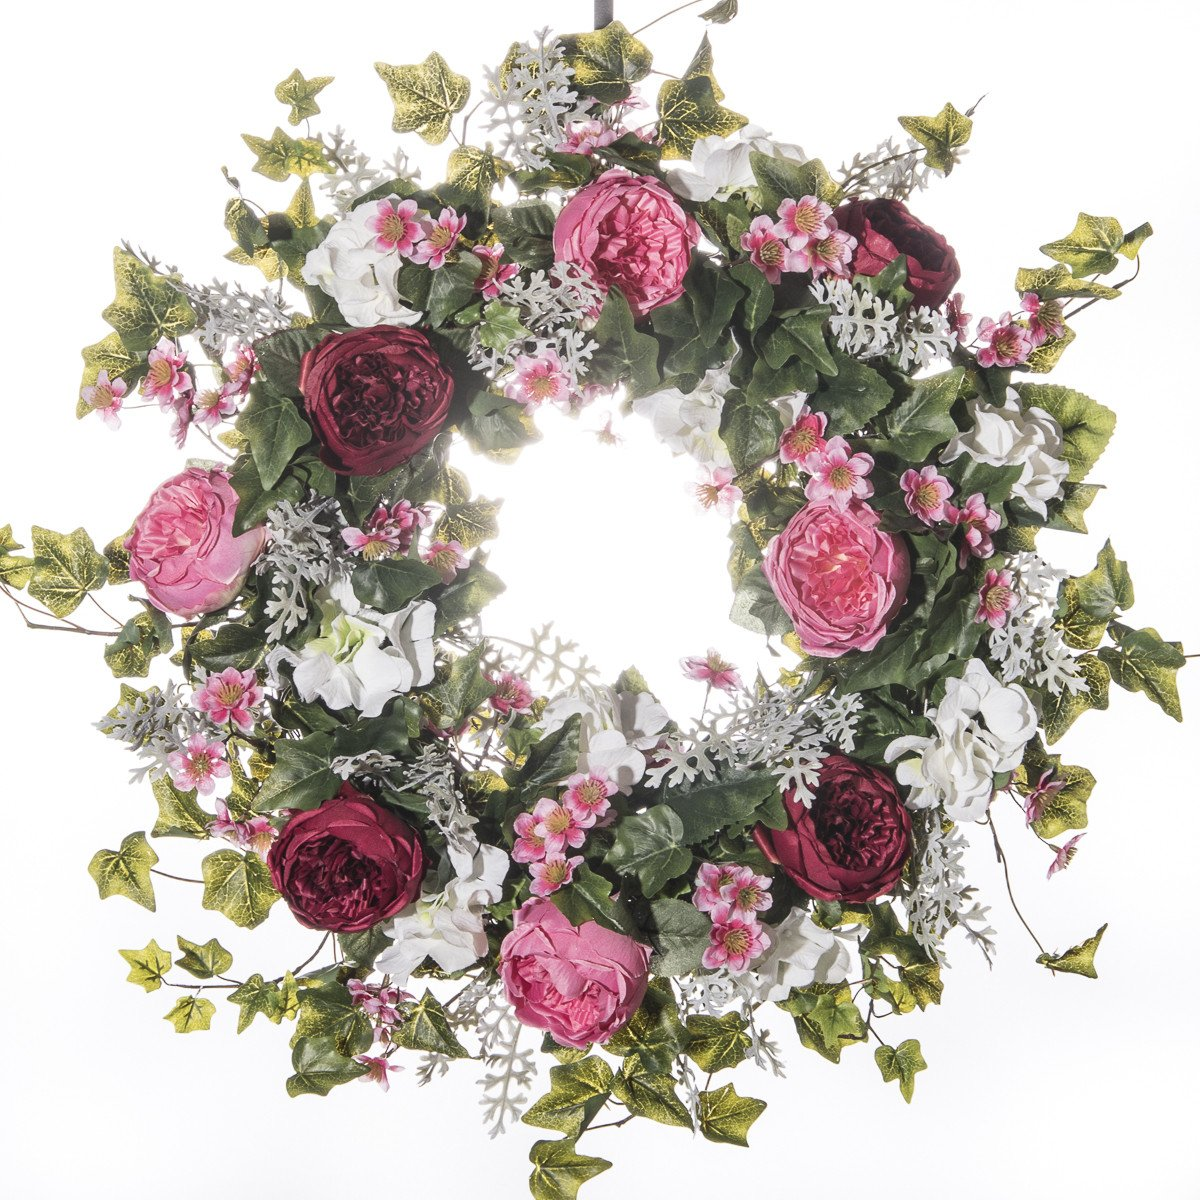 Pink & Burgandy Cabbage Rose Wreath - Everyday Wreath (26 inch) by Darby Creek Trading